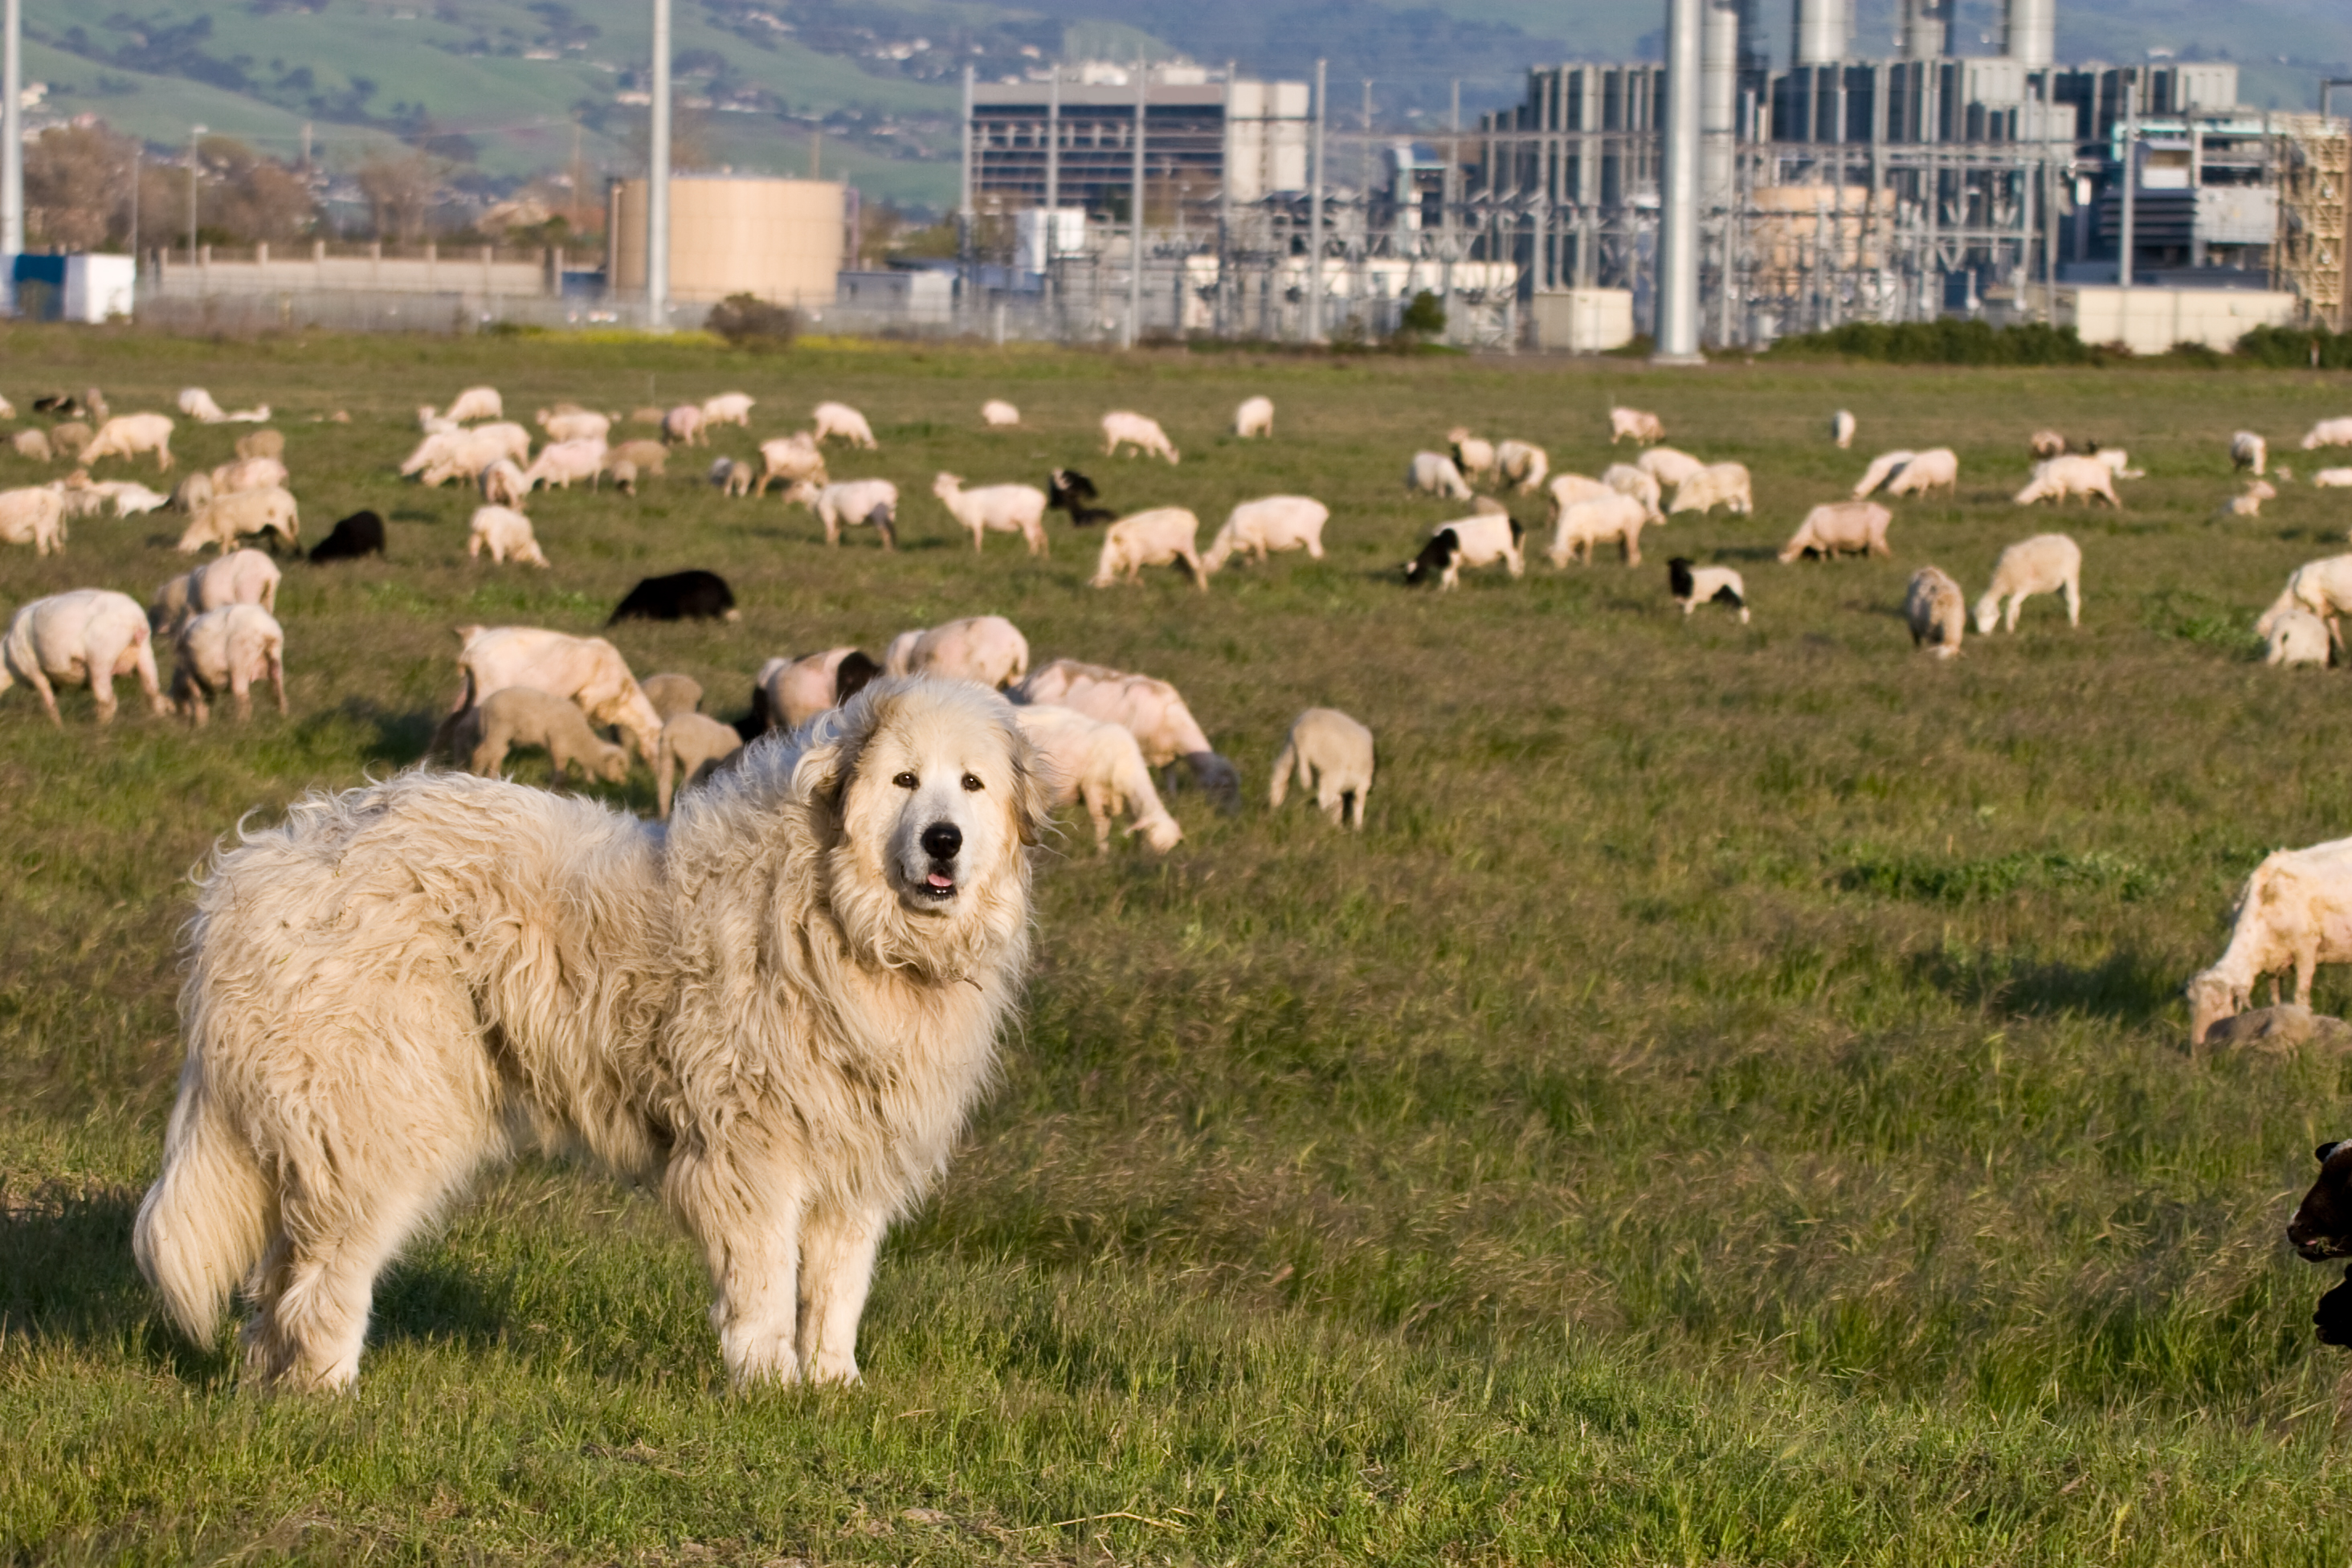 A Great Pyrenees watches over his flock in the middle of the big city. The property uses sheep and goats to clear ground instead of herbicides.